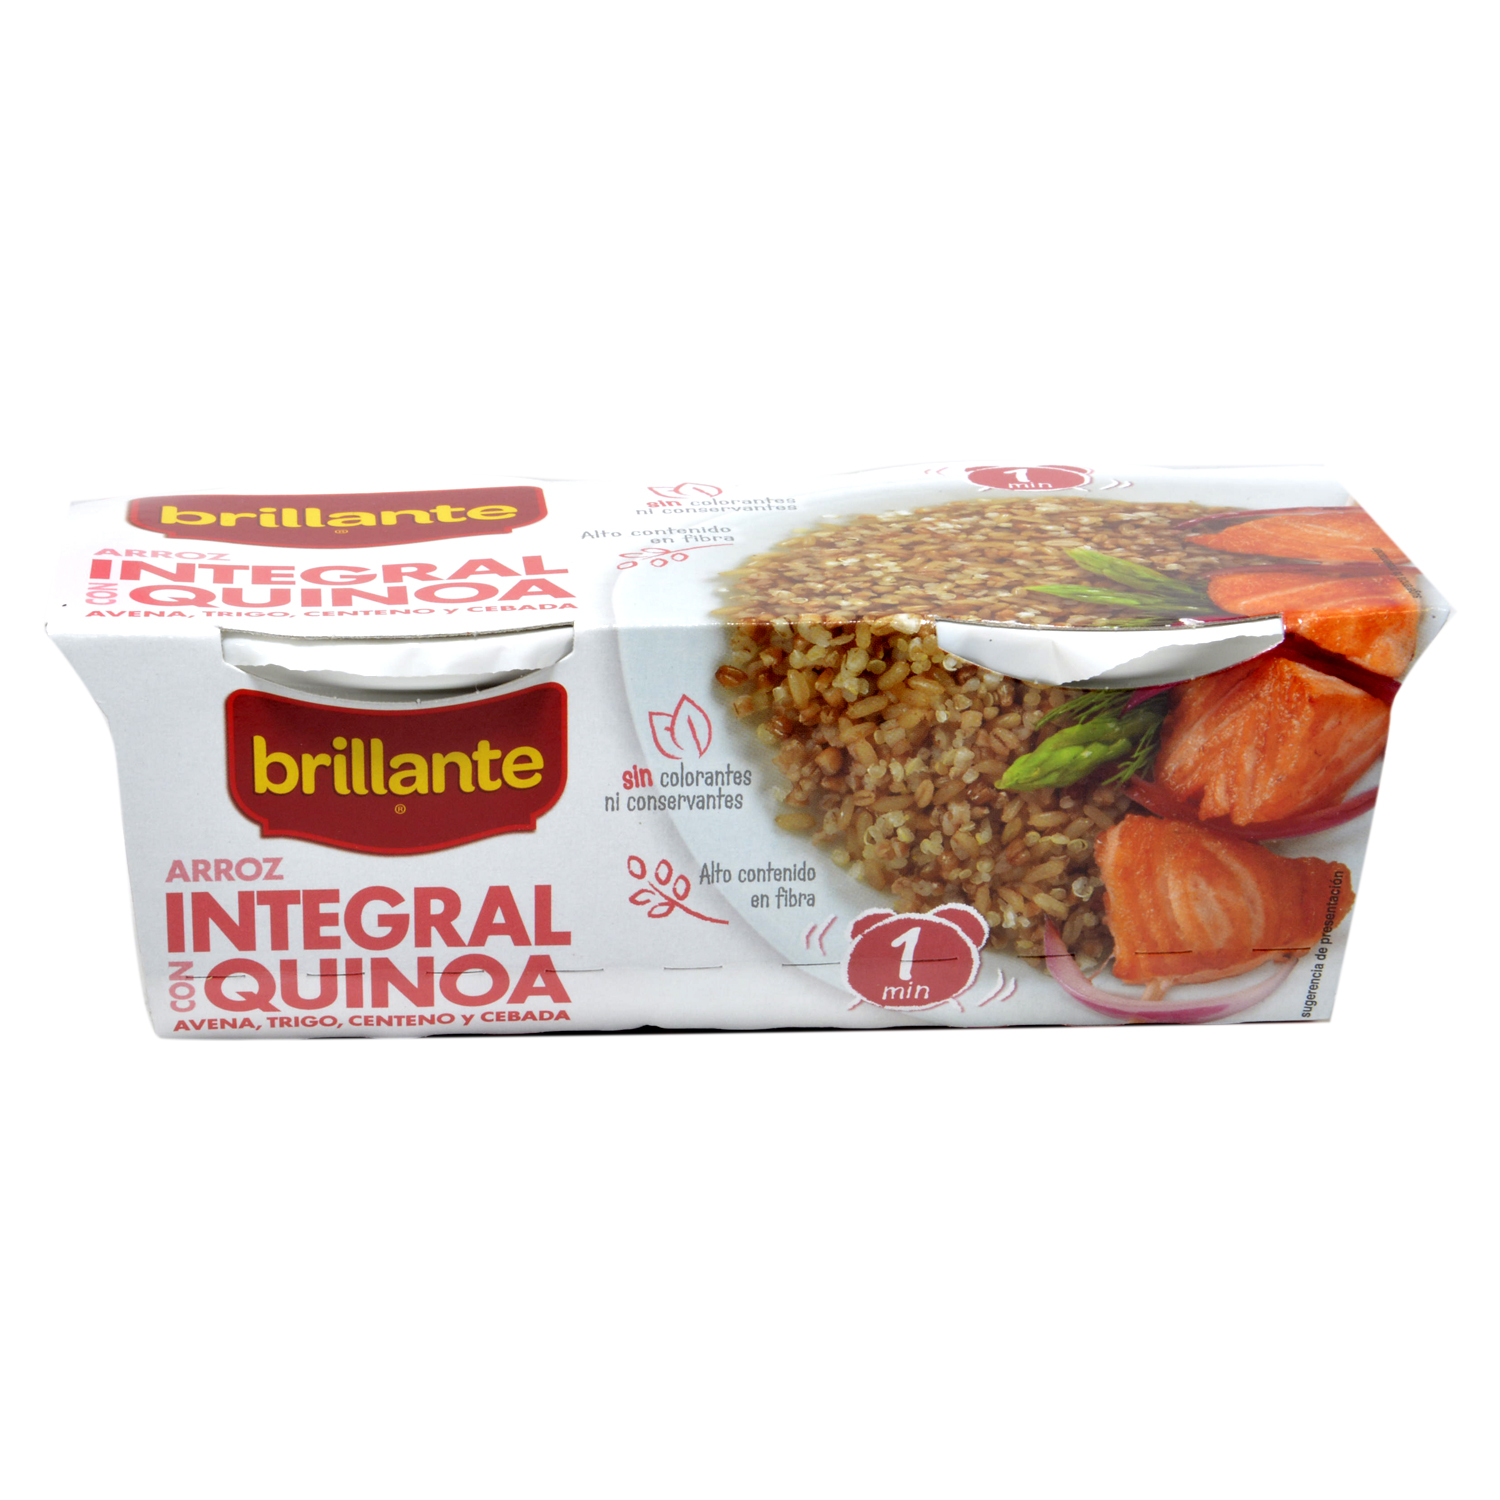 Arroz integral con soja -